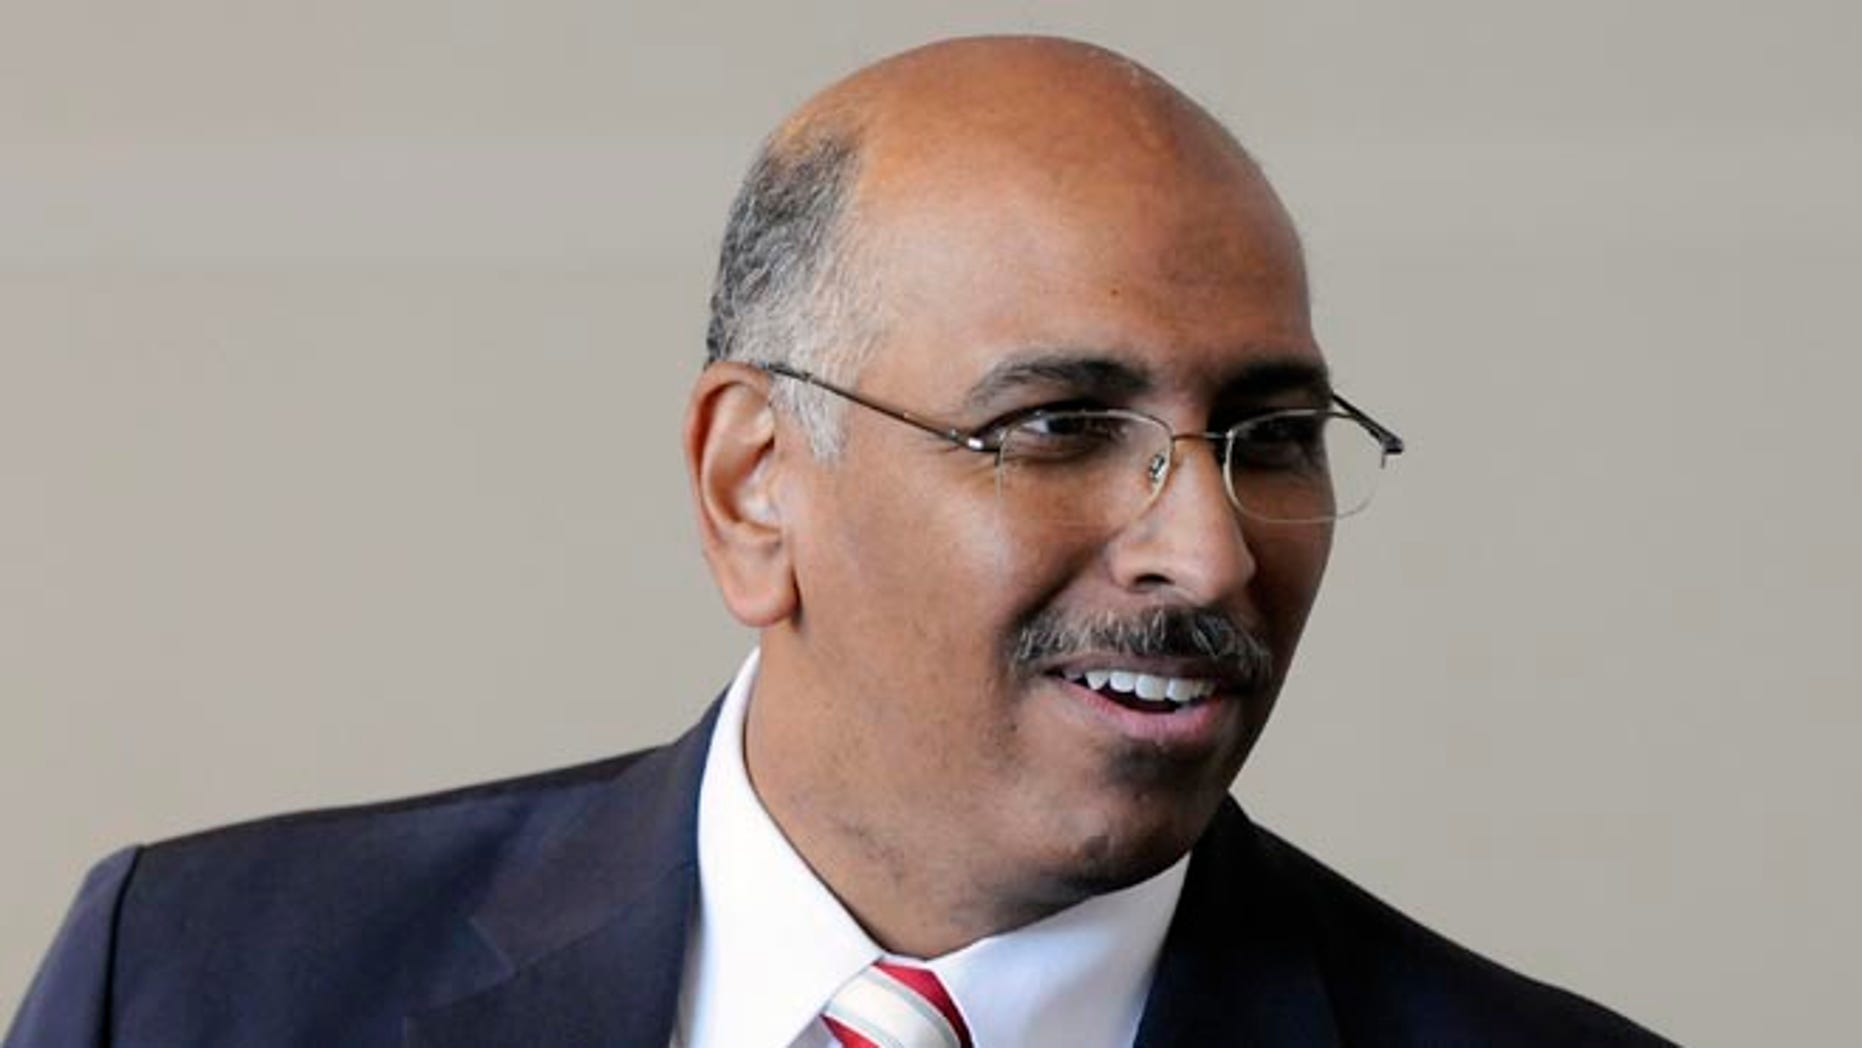 FILE: January 14, 2011: Then-Republican National Committee Chairman Michael Steele at the group's winter meeting in National Harbor, Md.